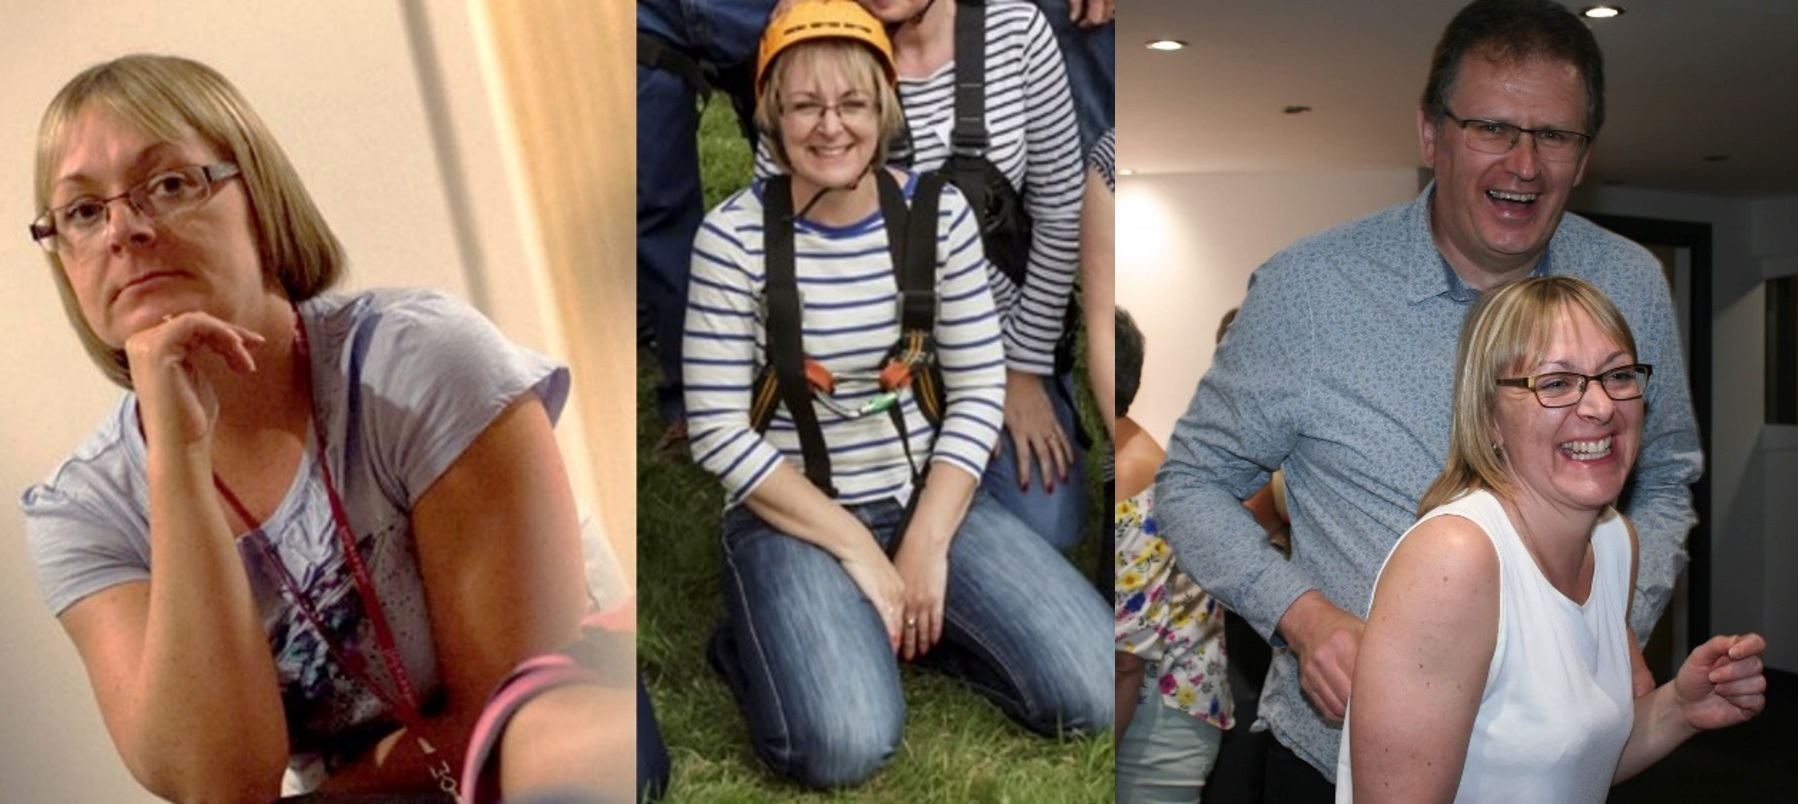 Helaine Addison, Office Manager of Hawkins Cambridge, is pictured in three photographs from her career